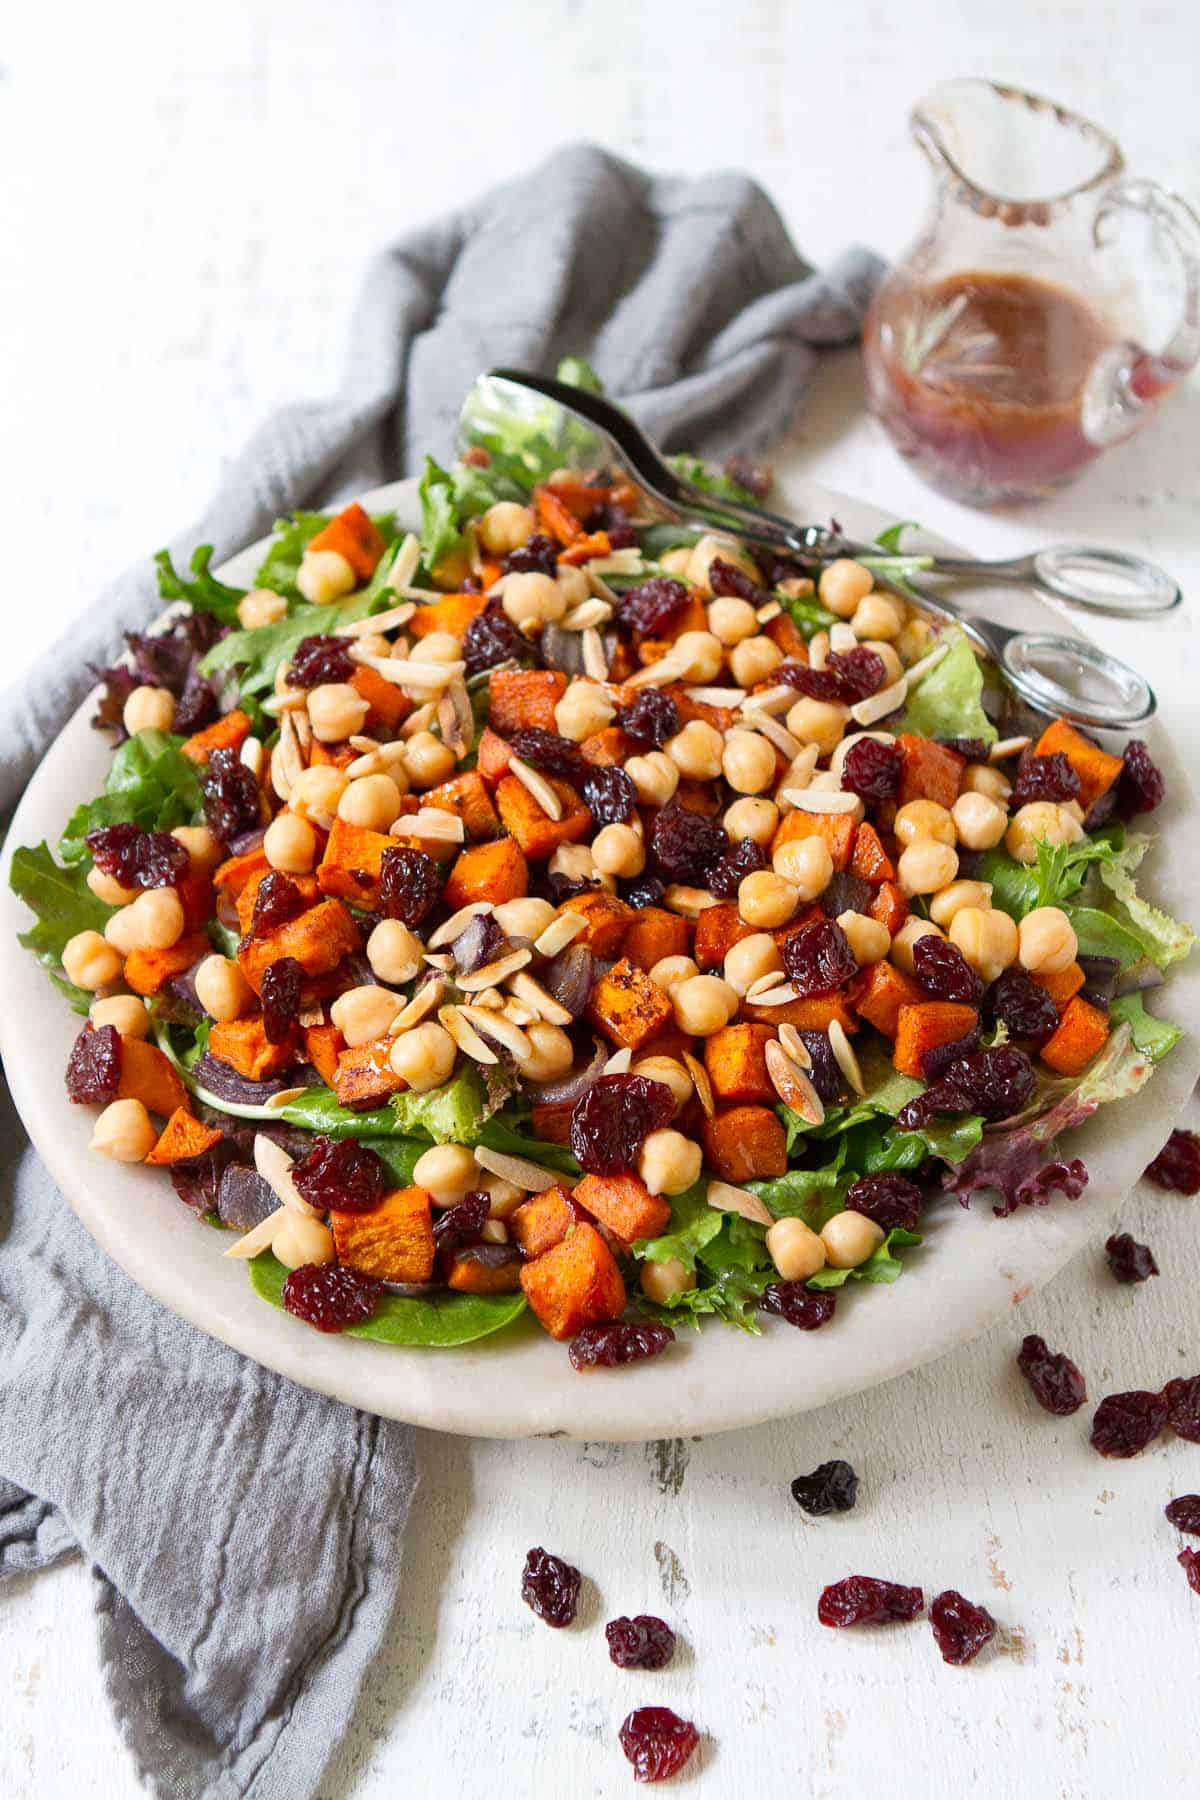 Sweet potato salad with chickpeas and tart cherries in stone bowl. Carafe of dressing behind.